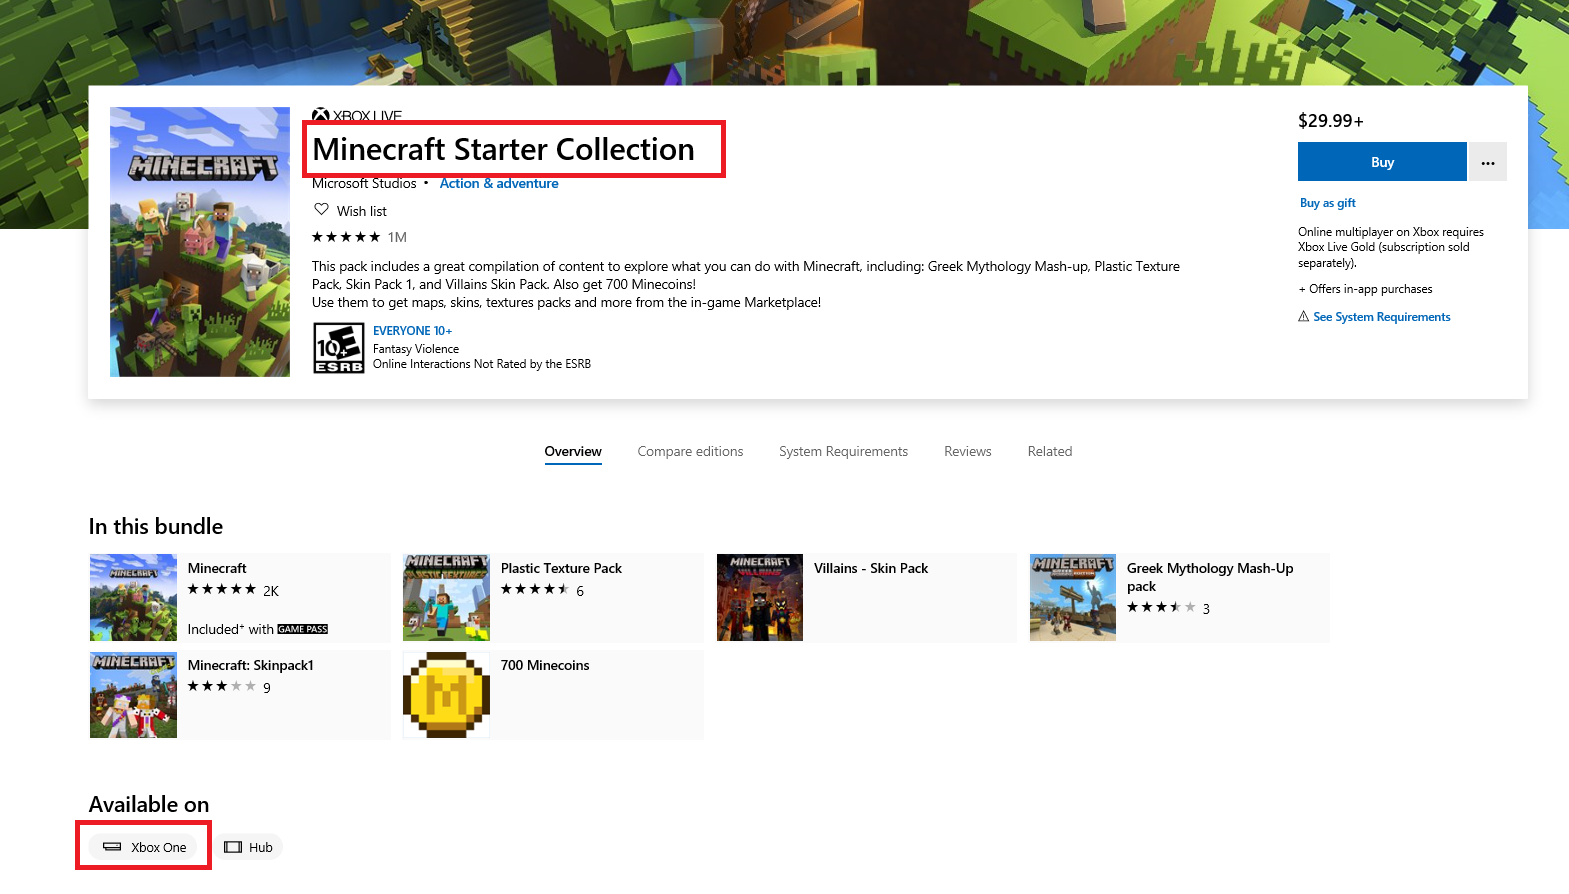 Unable to install Minecraft for Windows 10 Starter Collection 862d3756-fb82-4174-b532-f47bed2d4c72?upload=true.png